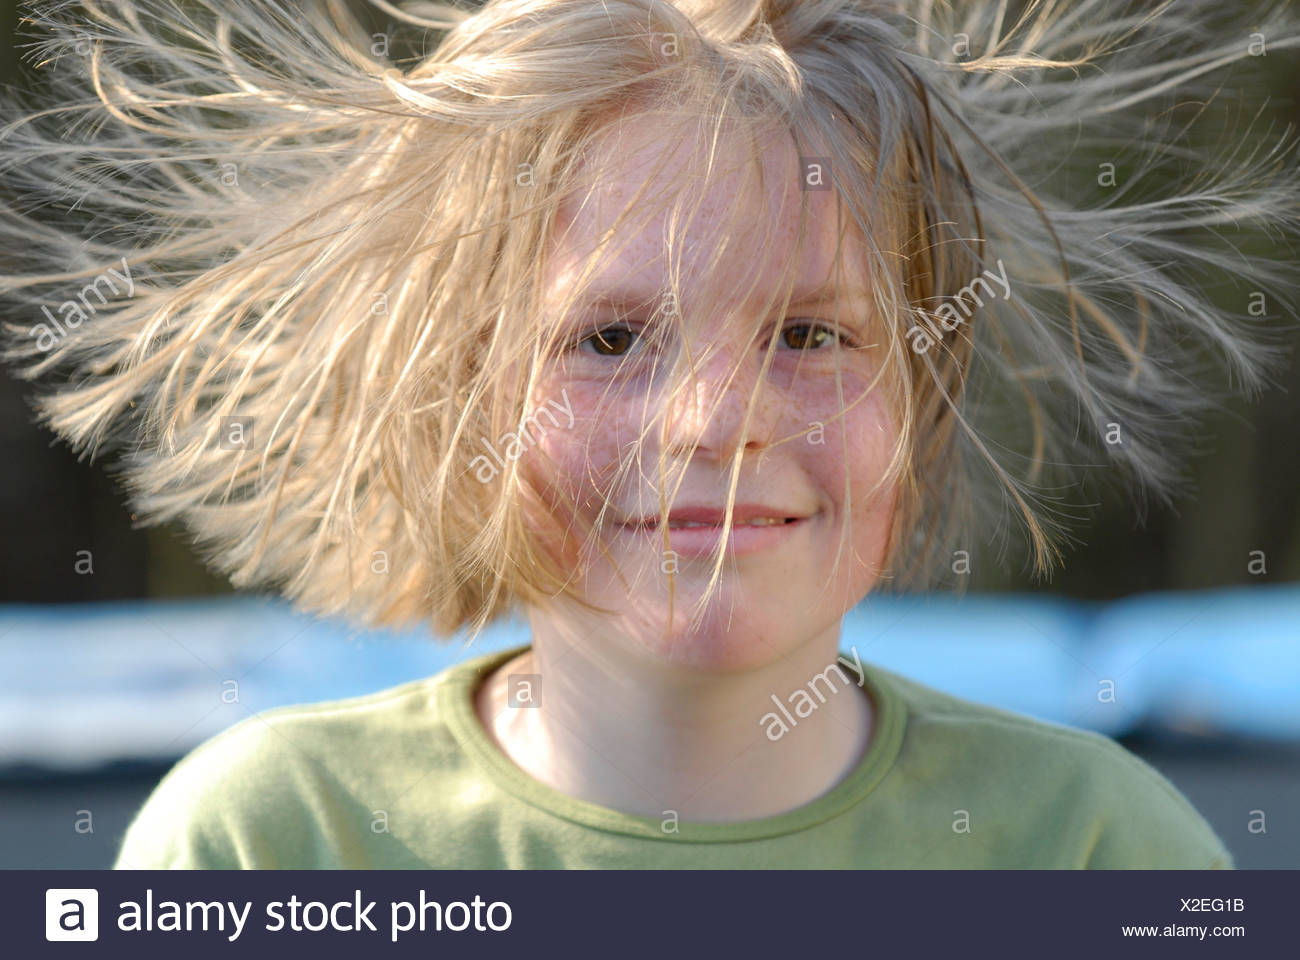 Girl with electrostaticly charged hair - Stock Image